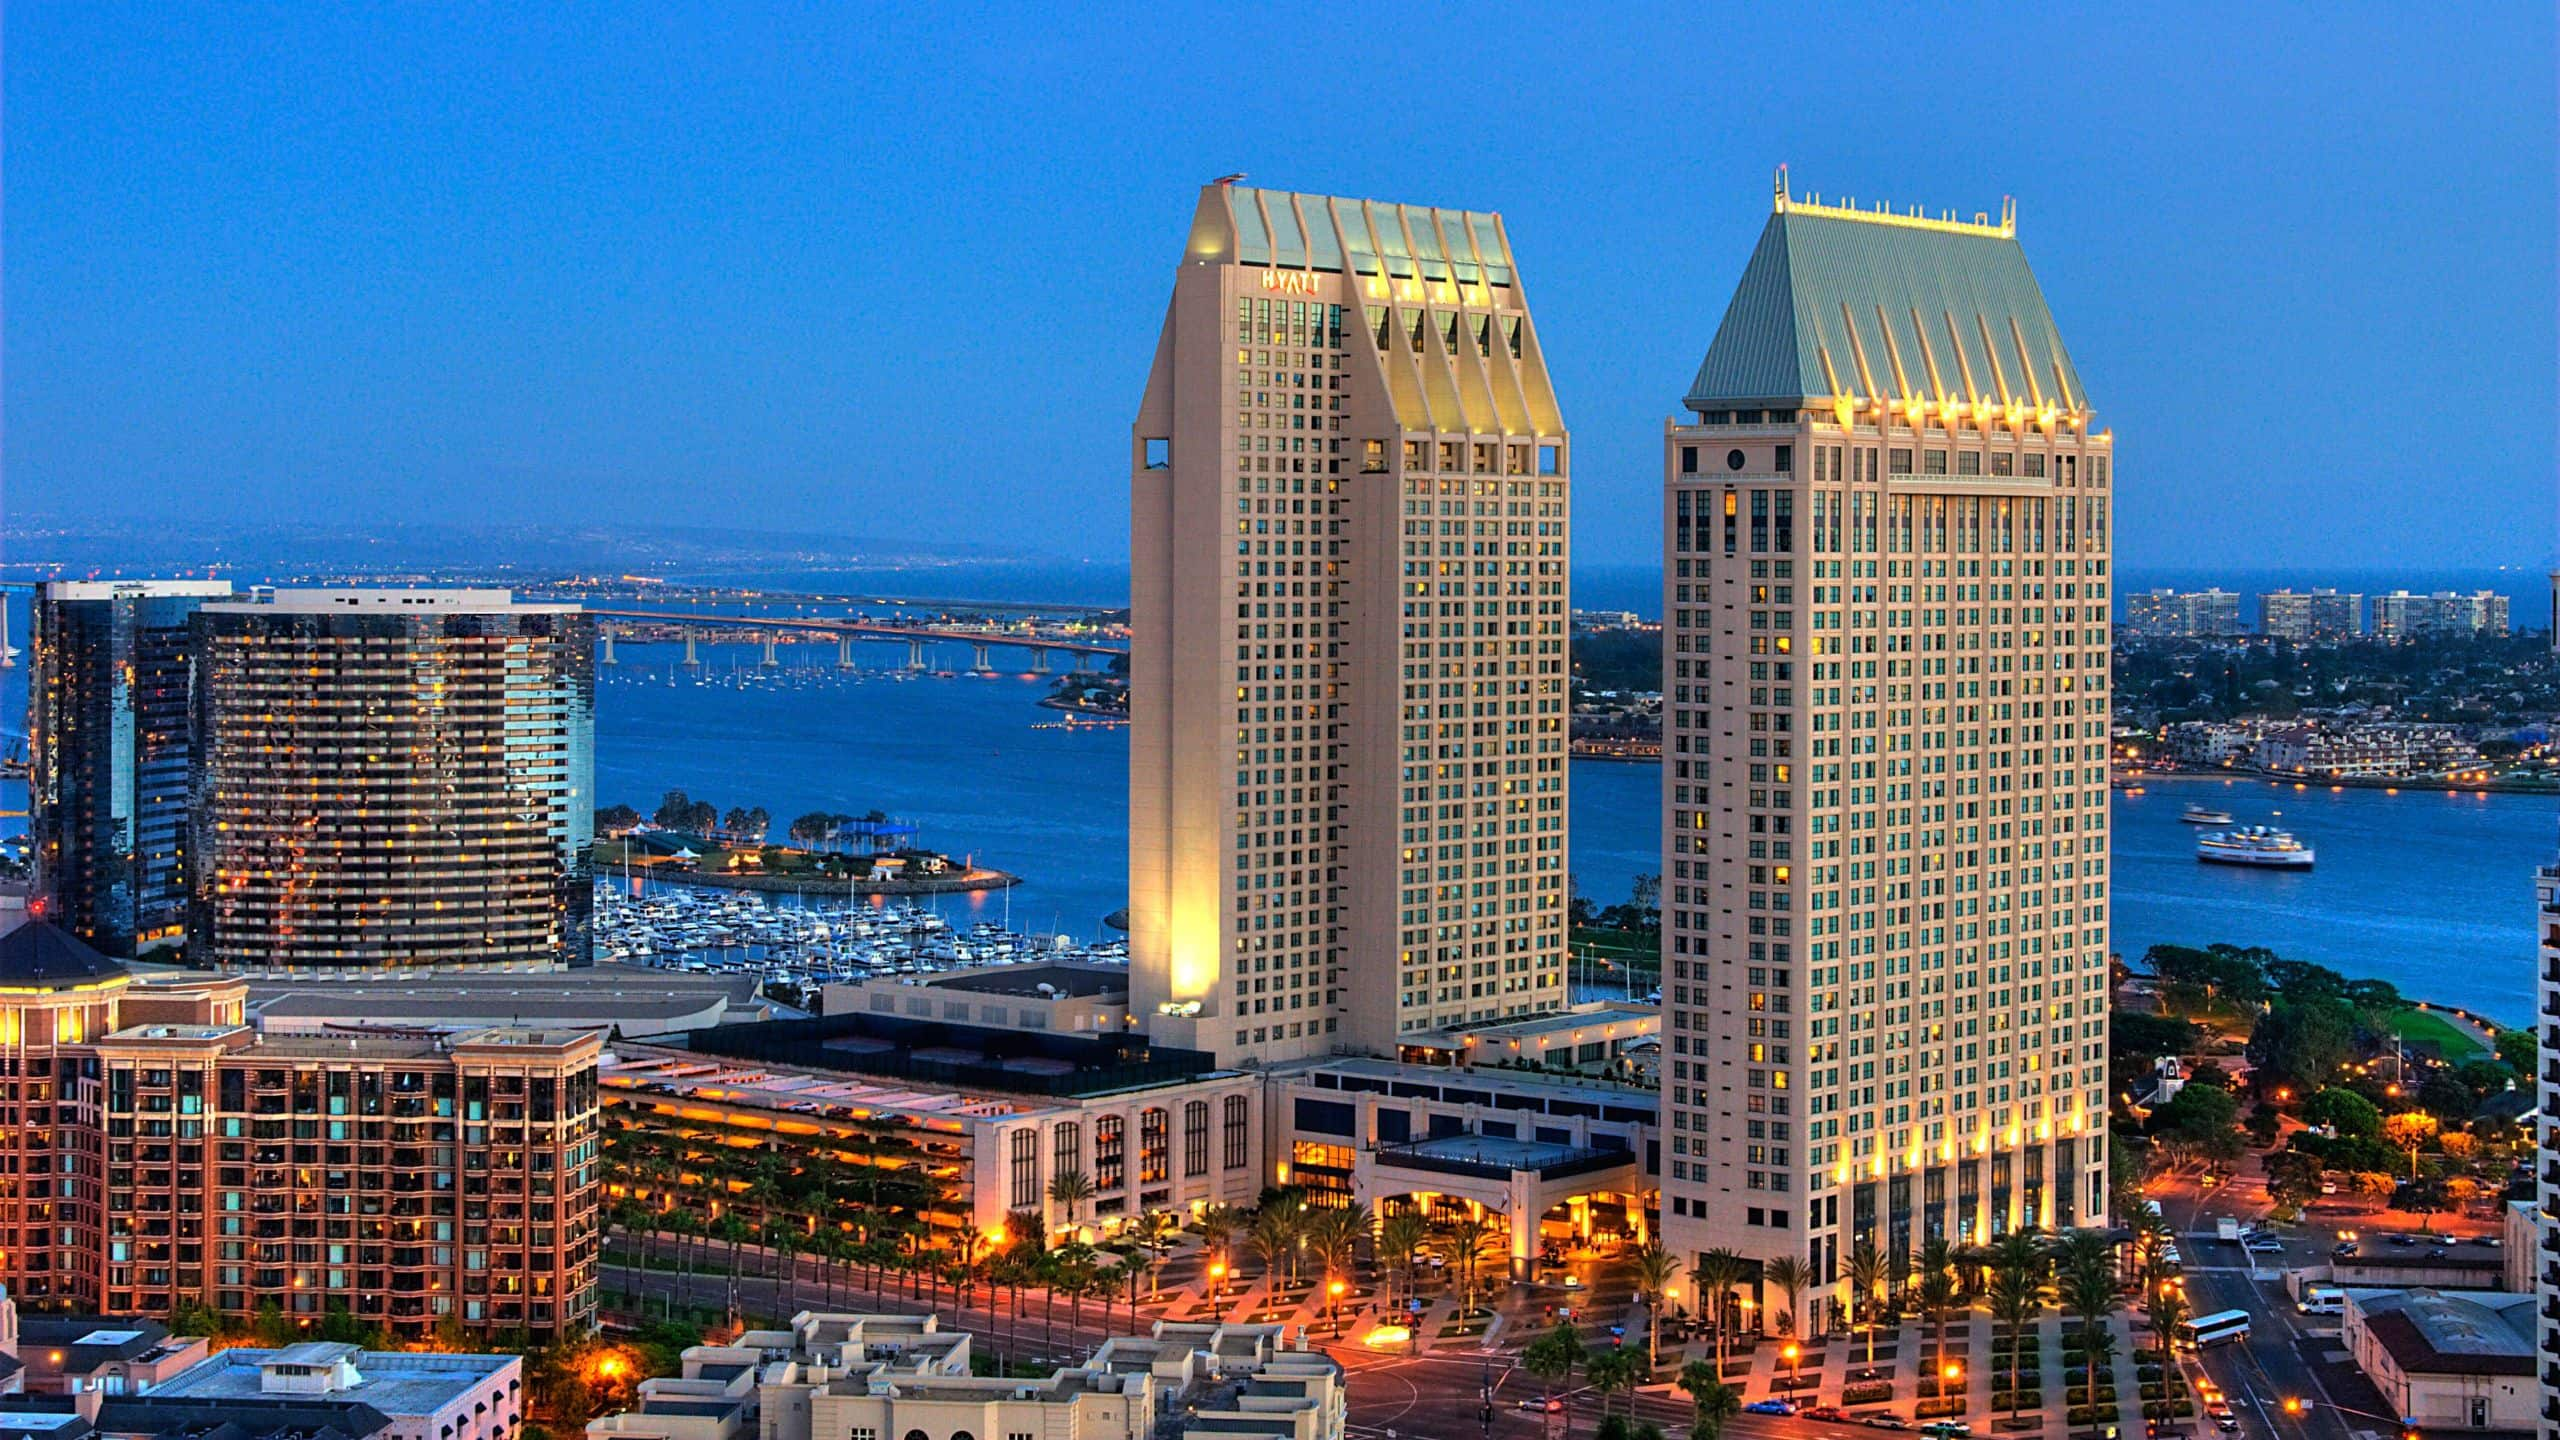 Manchester Grand Hyatt San Diego - Book with free breakfast, hotel credit,  VIP status and more